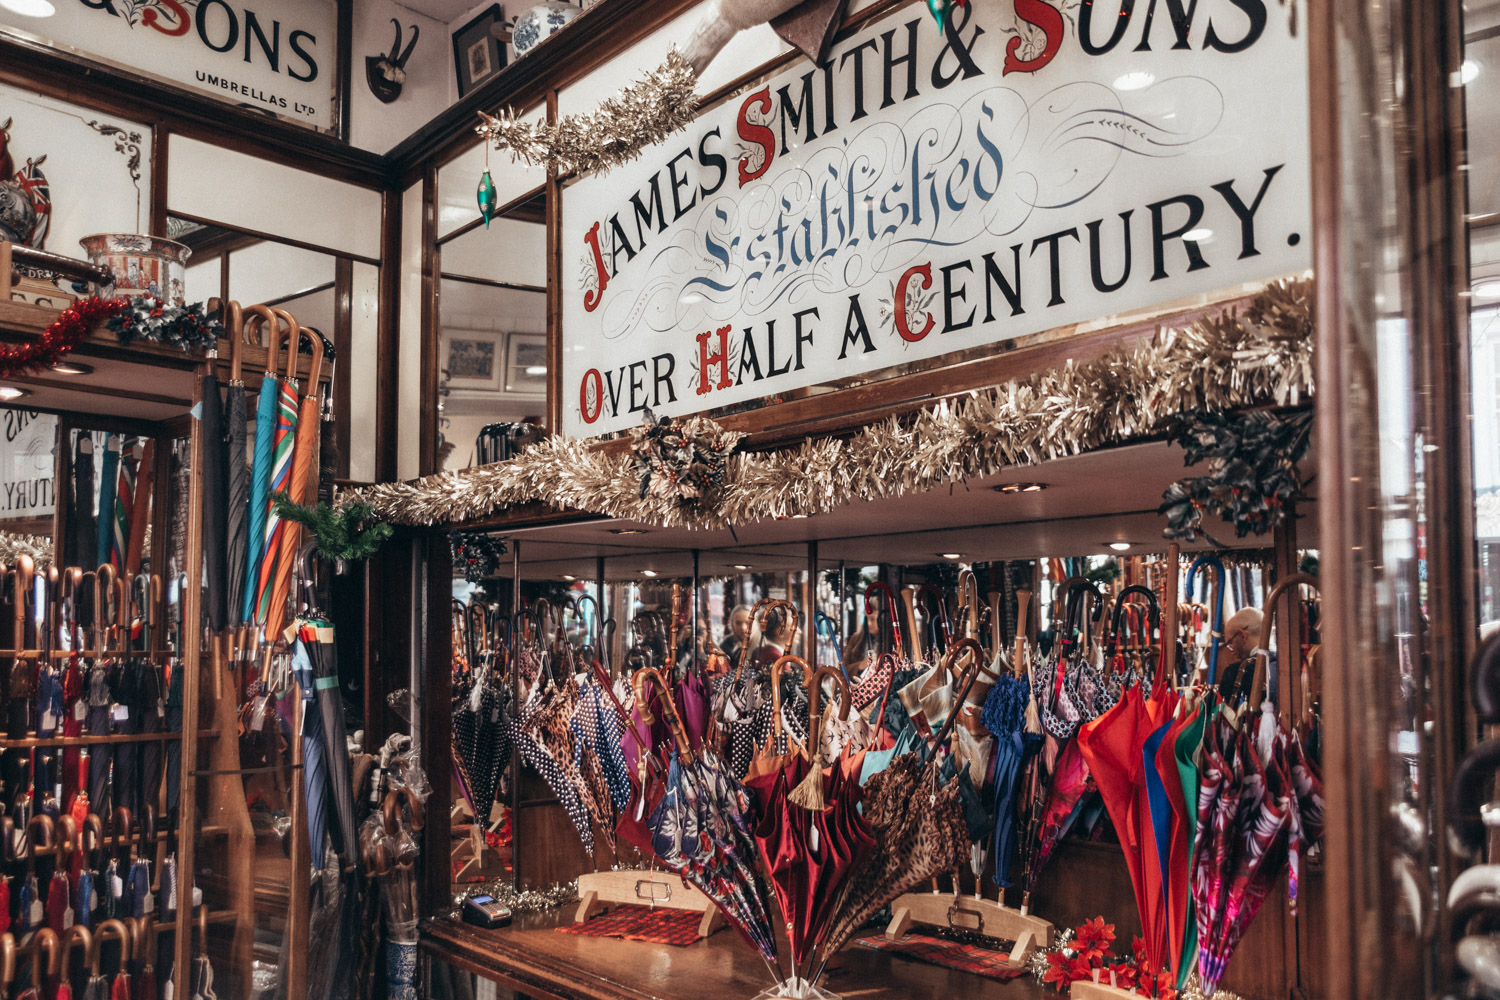 James Smith & Sons Umbrella Shop in London, Great Britain